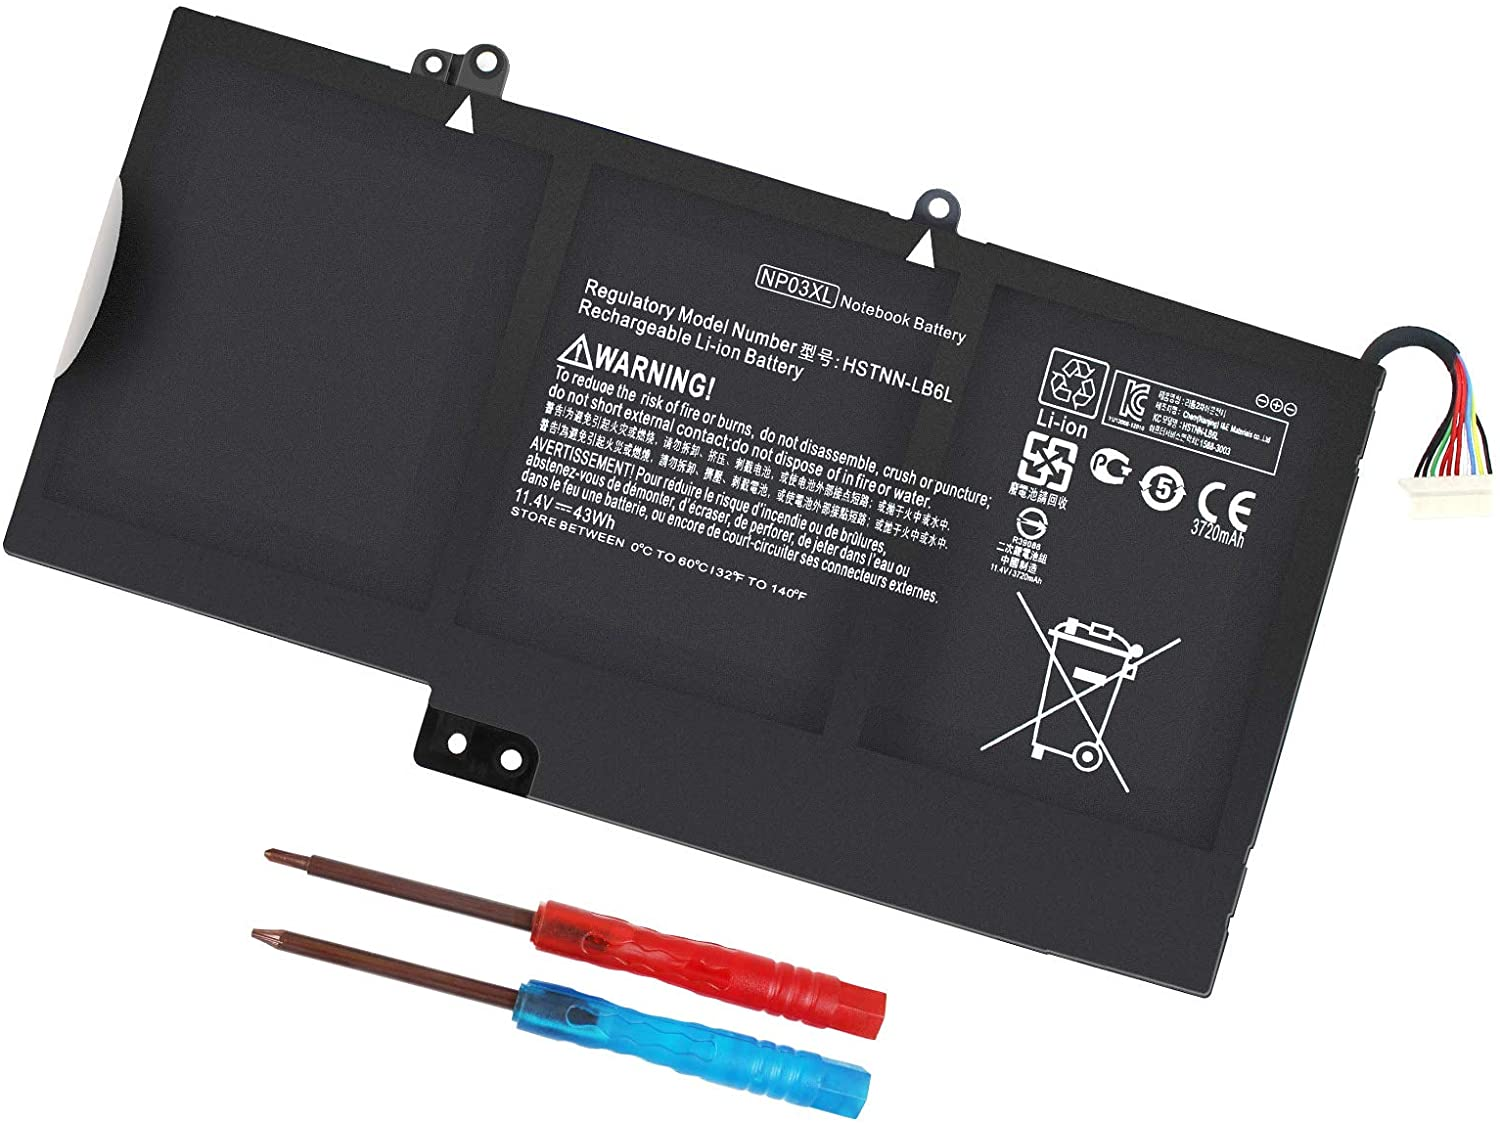 NP03XL 761230-005 Laptop Battery for HP Envy X360 15-U011DX 15-U010DX 15-U110DX 15T-U100 15-U111DX 15- U483CL 15-U493CL,HP Pavilion X360 13-A010DX 13-A012DX 13-A013CL 13-A110DX - 12 Month Warranty